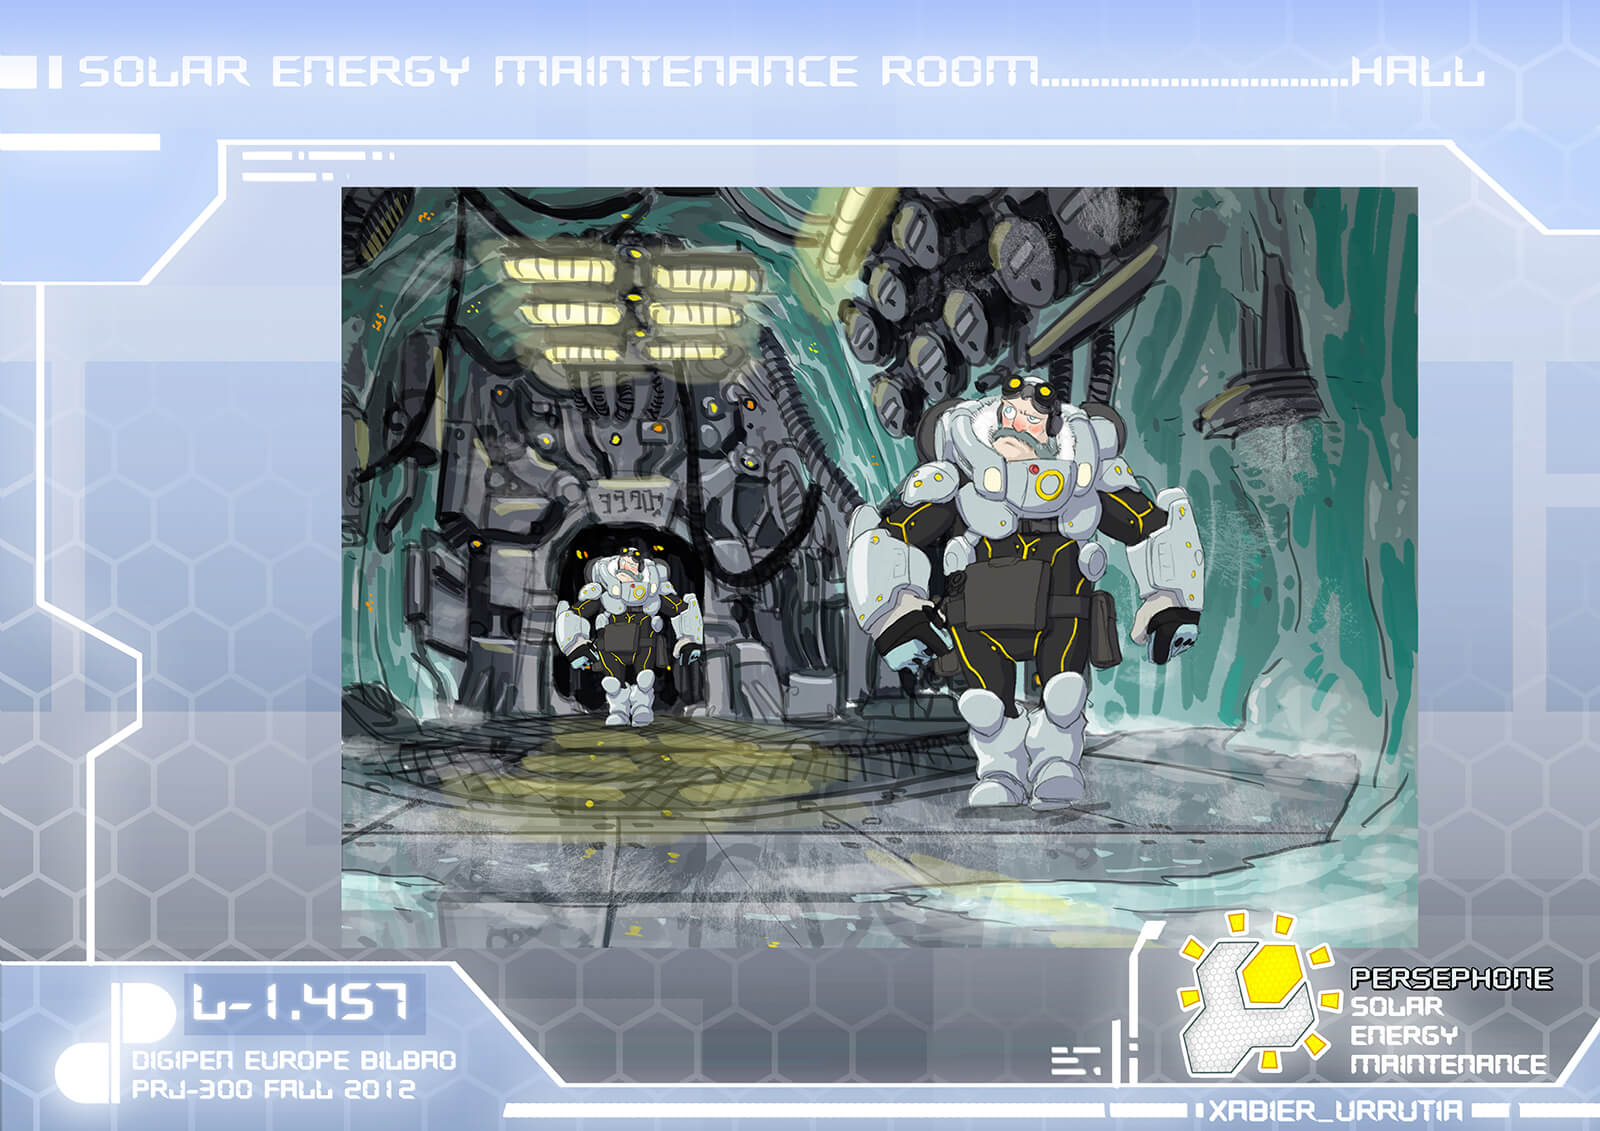 Concept painting of a bearded man in white futuristic armor walking down an icy cave lined with machinery and lighting